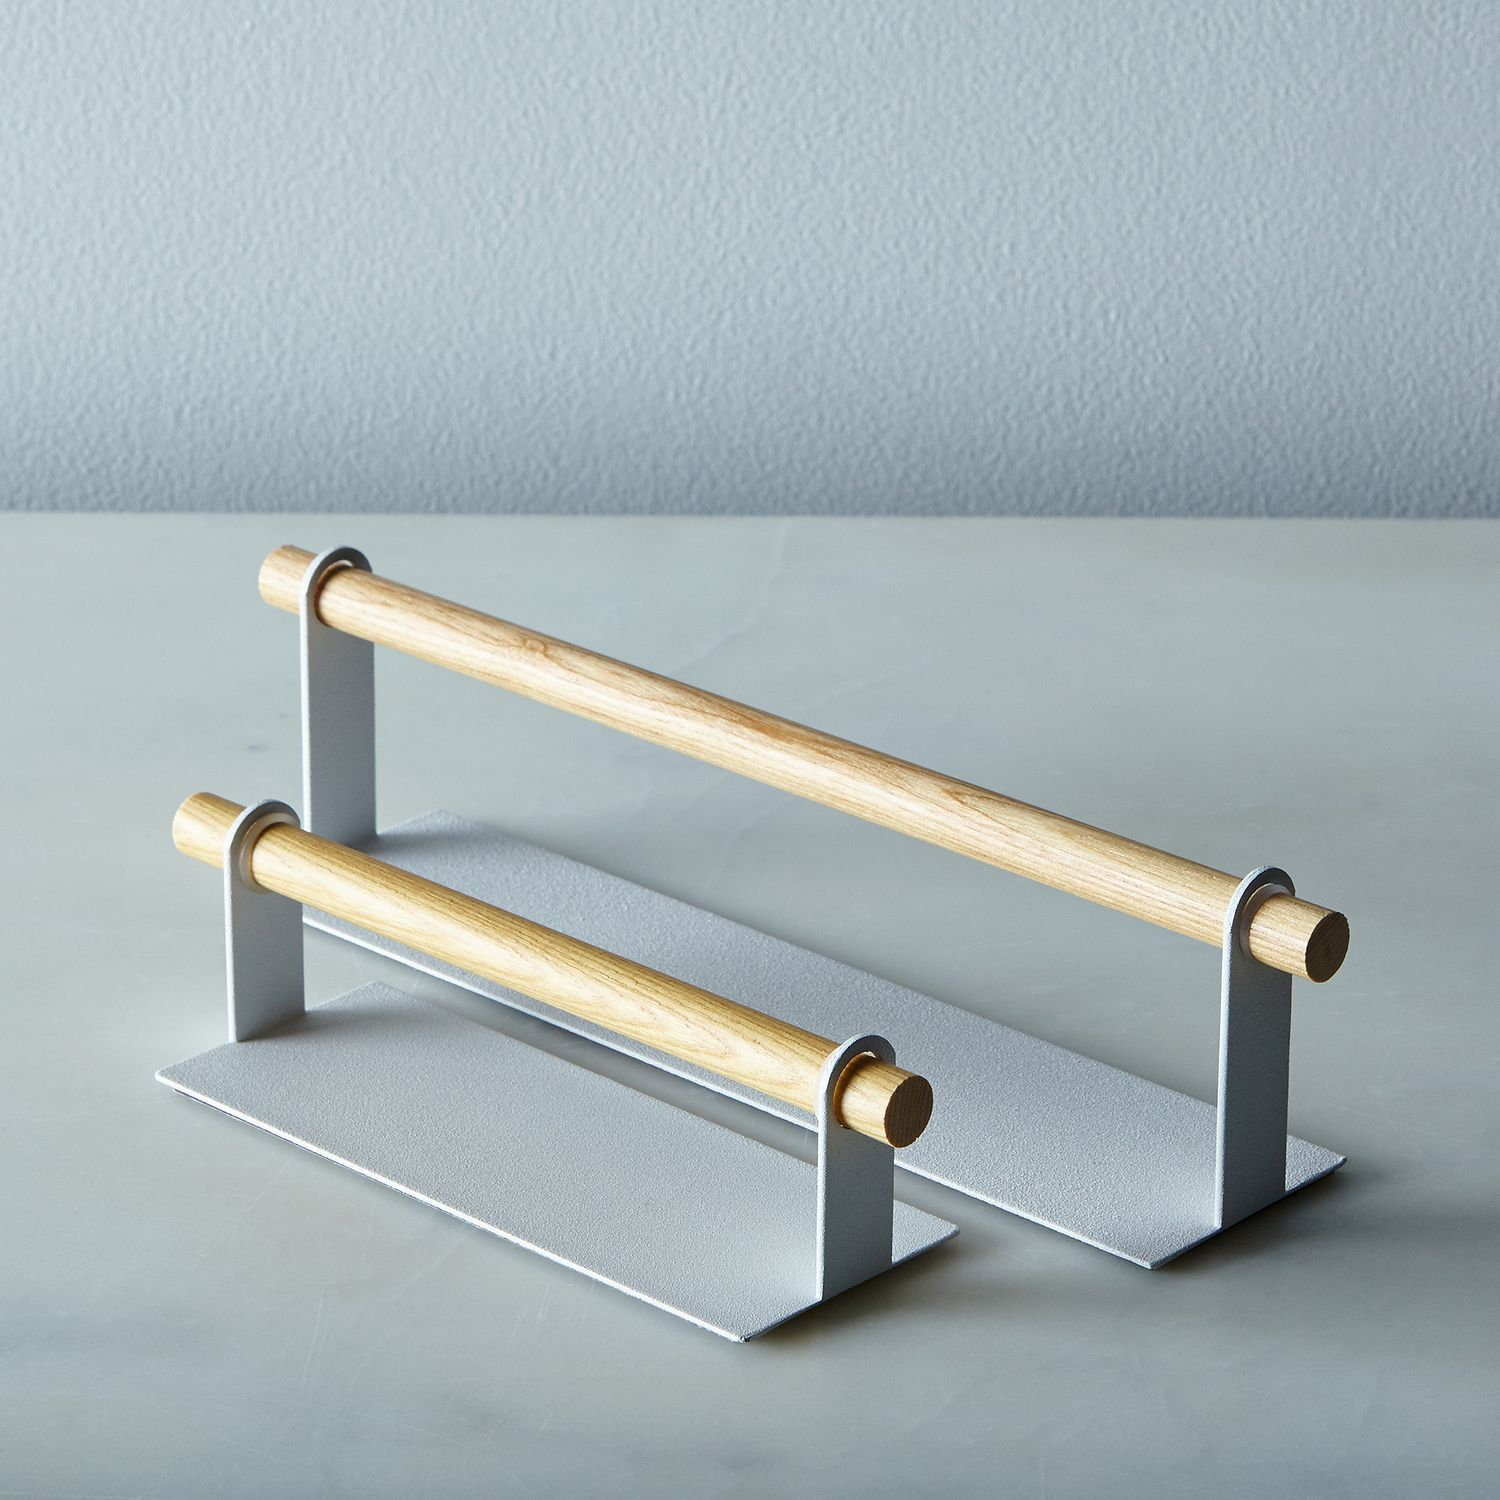 Magnetic Kitchen Towel Holder on Food52 | In the Kitchen | Pinterest